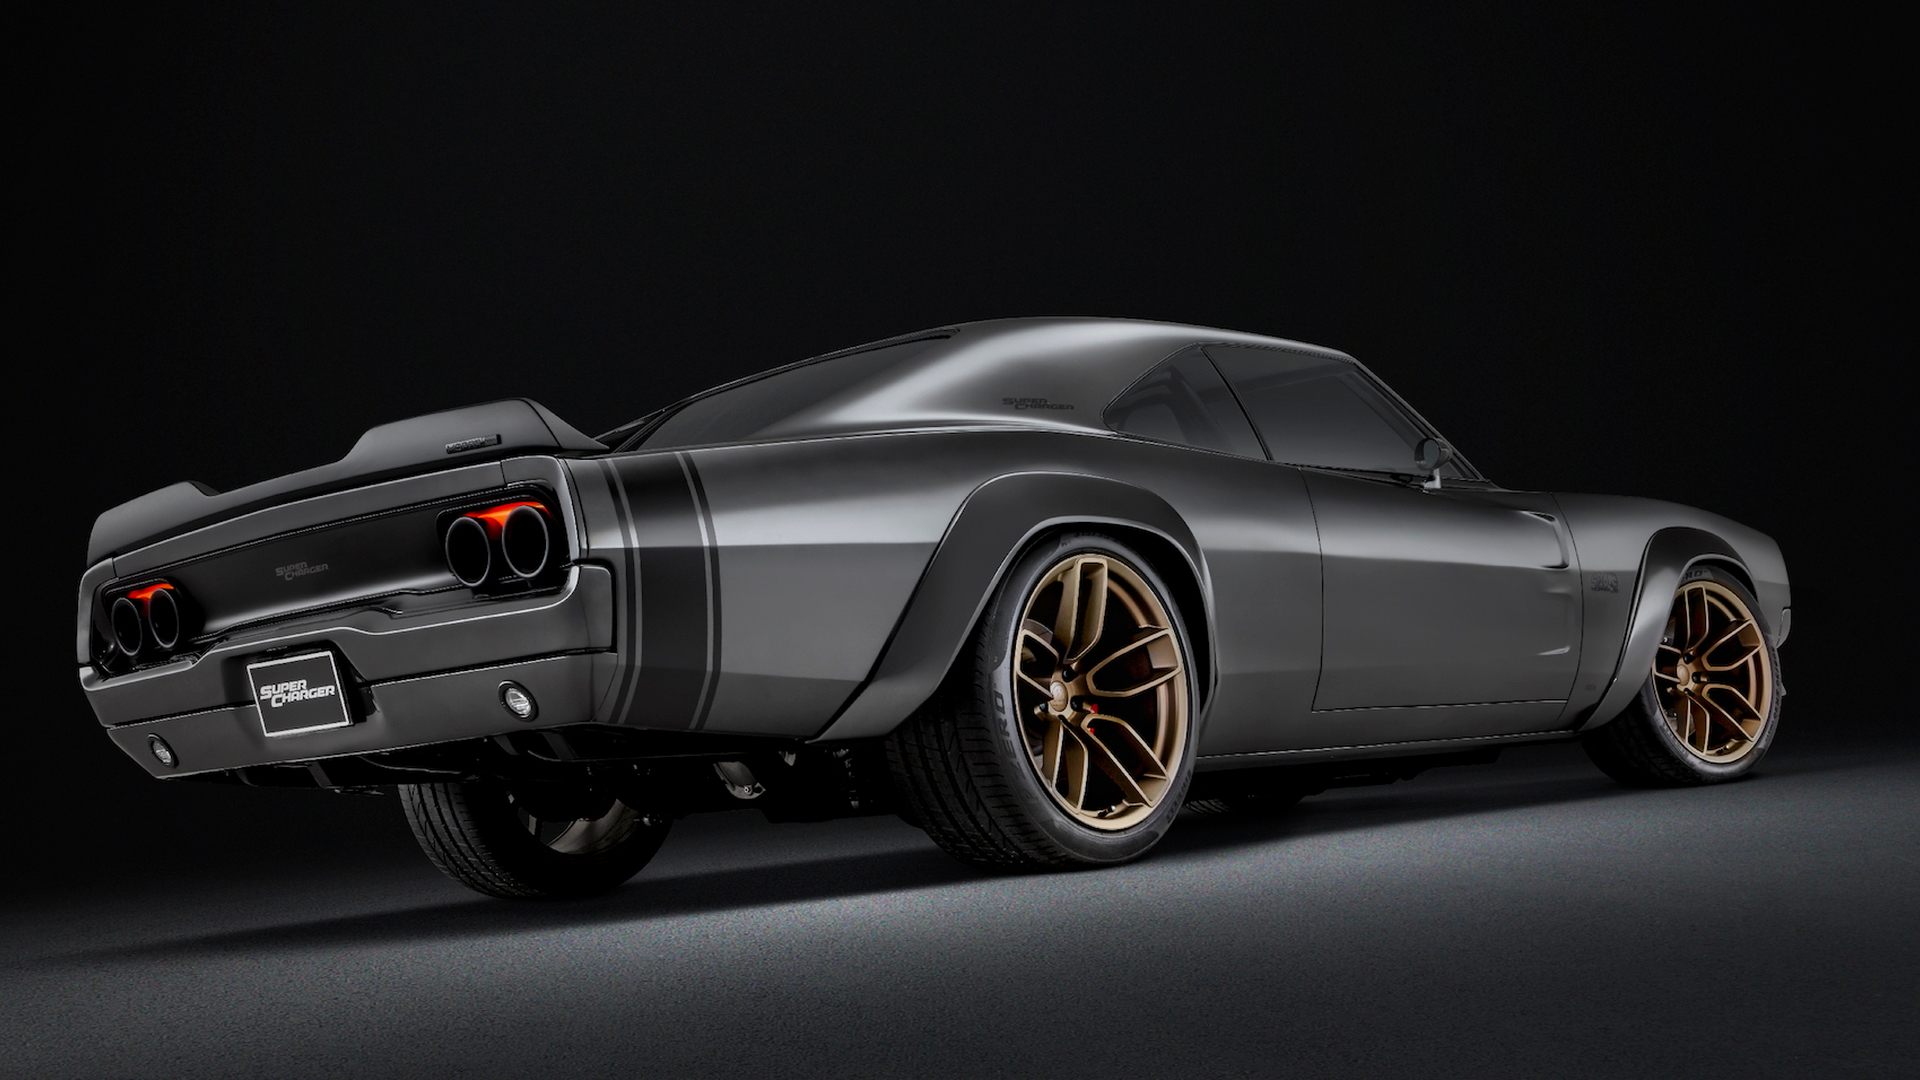 Mopar Ready To Stomp The Competition With 1 000 Horsepower